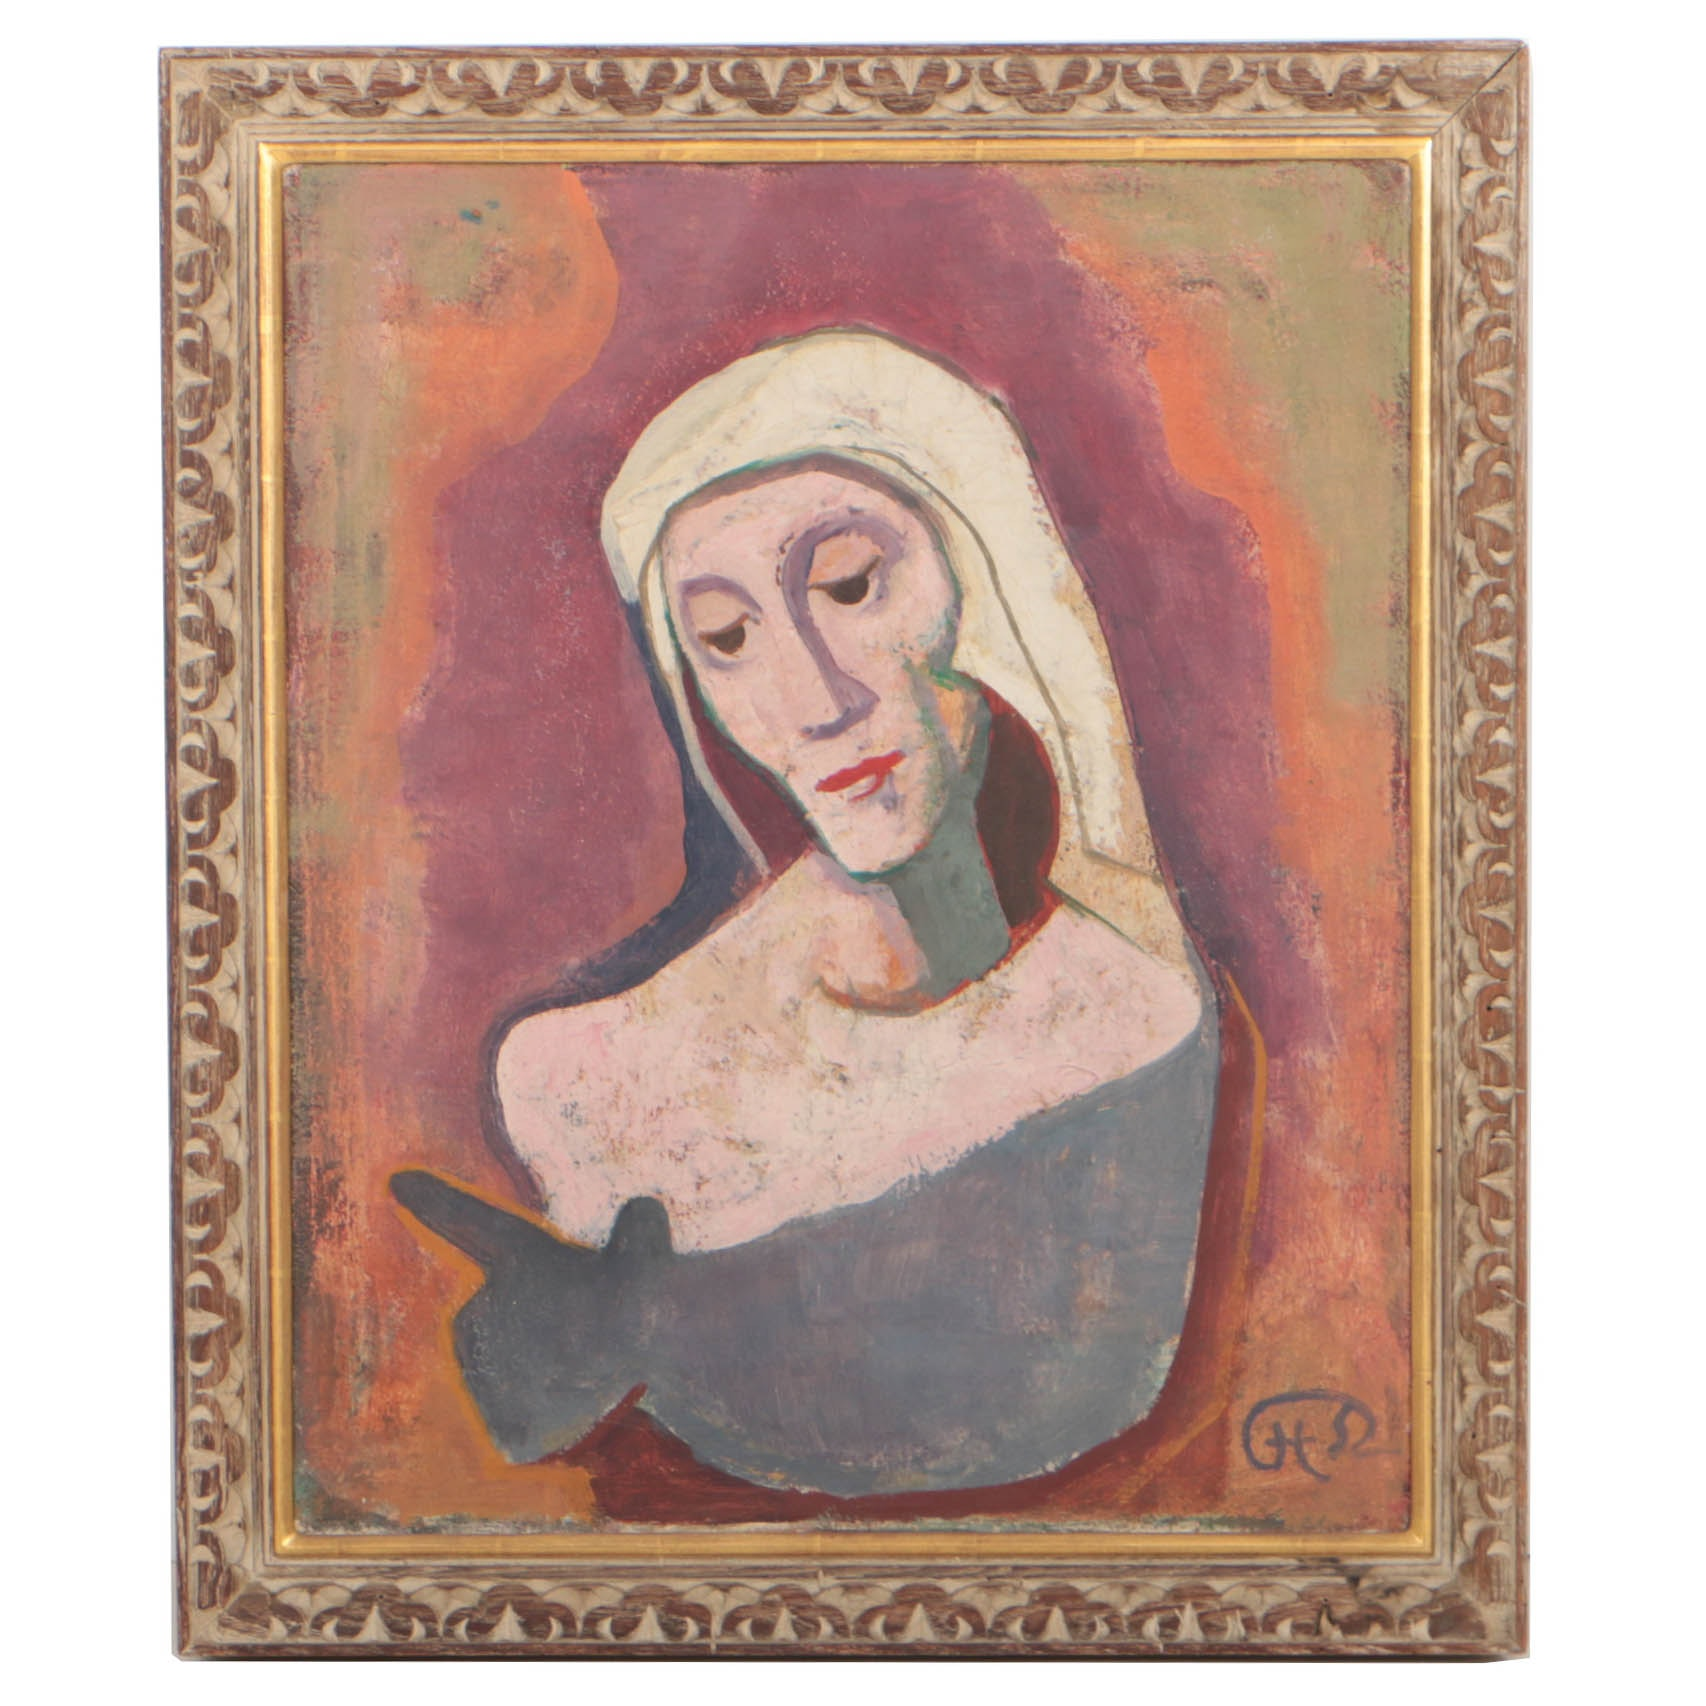 Karl Hofer 1952 Oil Painting Abstract Portrait of a Woman